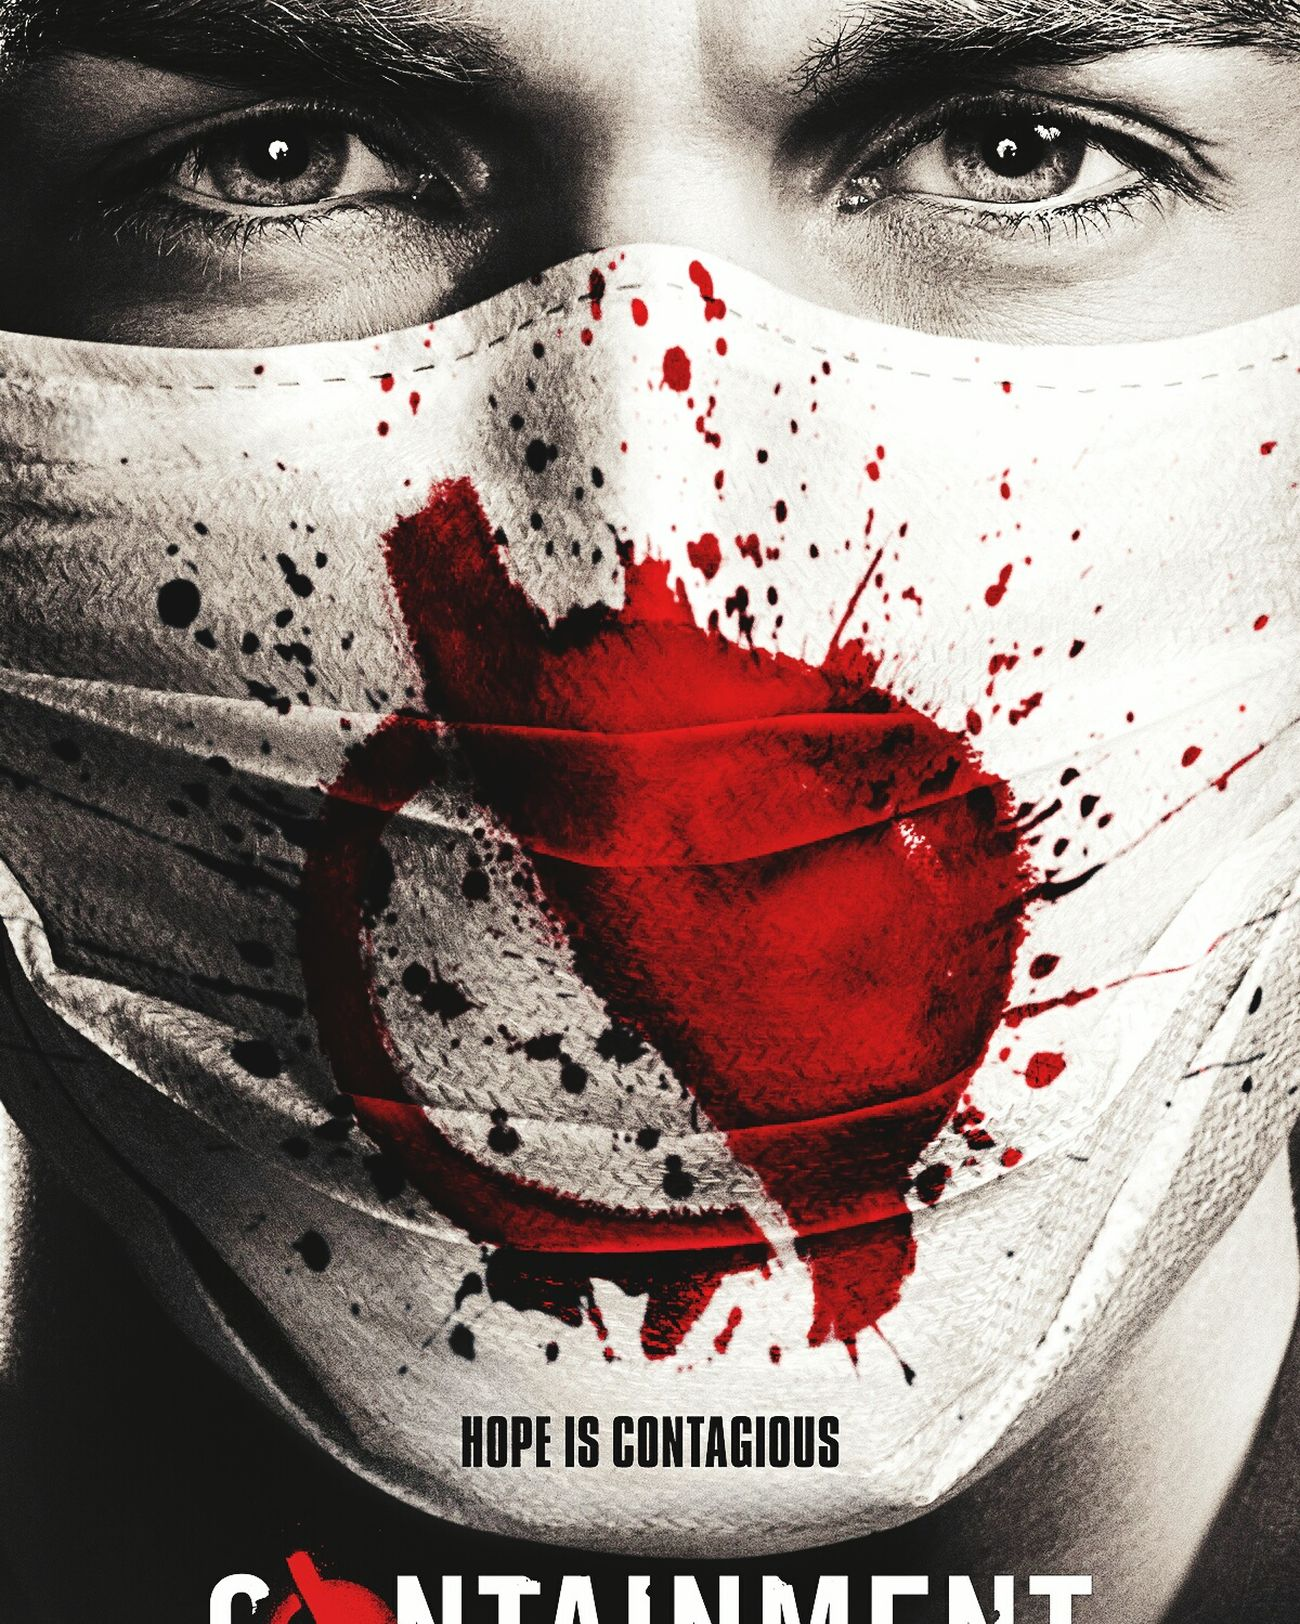 Conteinment, The Cw is an awesome sitcom. I 'm totally addicted. Horror Adults Only Adult Looking At Camera Spooky Only Women One Woman Only Red Young Adult One Young Woman Only One Person Paint Drop Halloween Portrait People Human Body Part Human Eye Human Face Shock